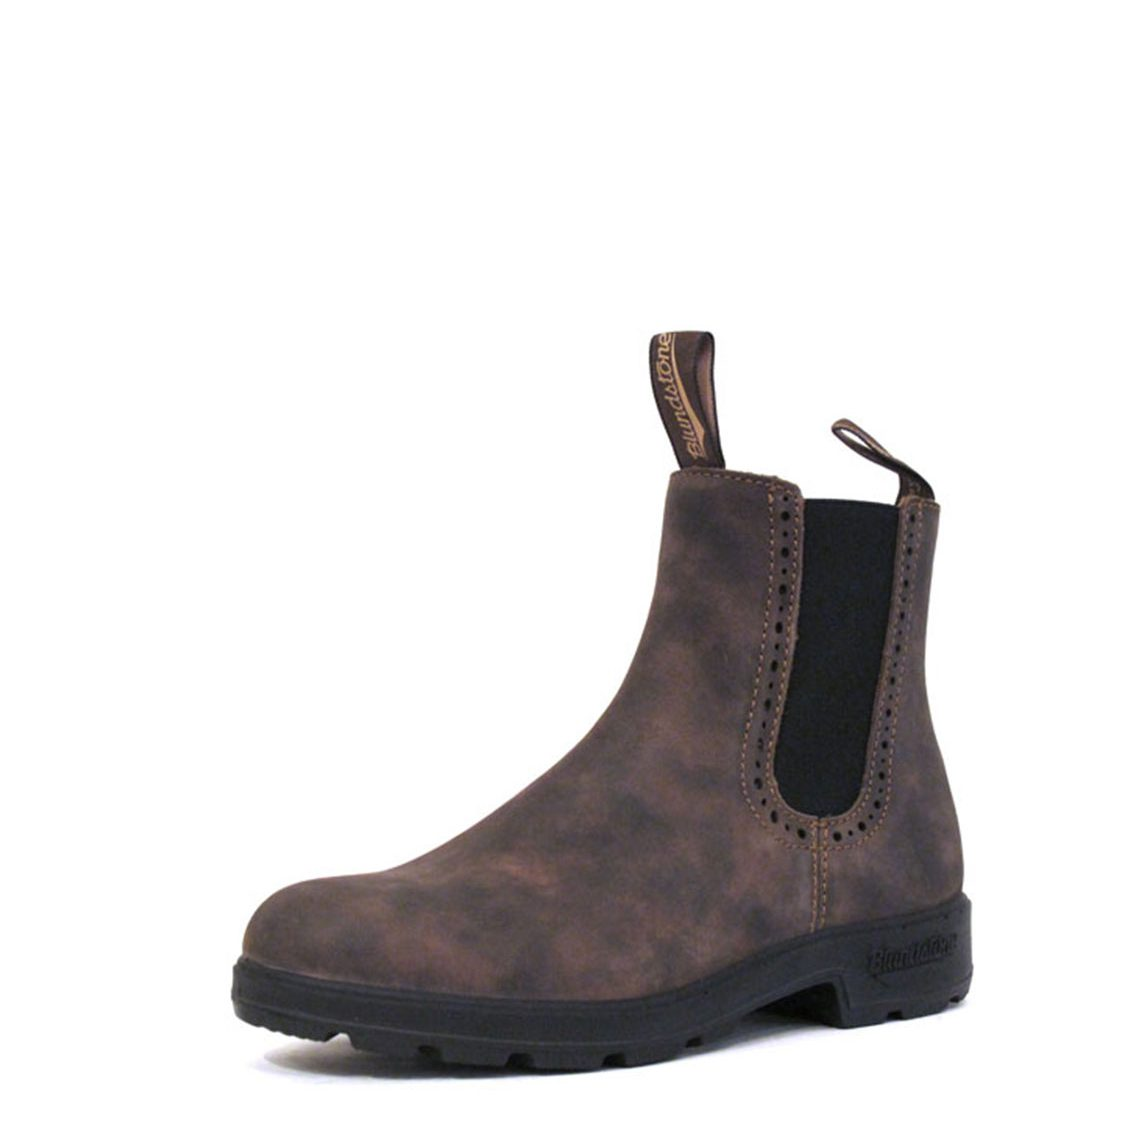 1c5db1047c3c Home   Products   Footwear Women s   Blundstone Women s   Blundstone 1351  Rustic Brown Women s